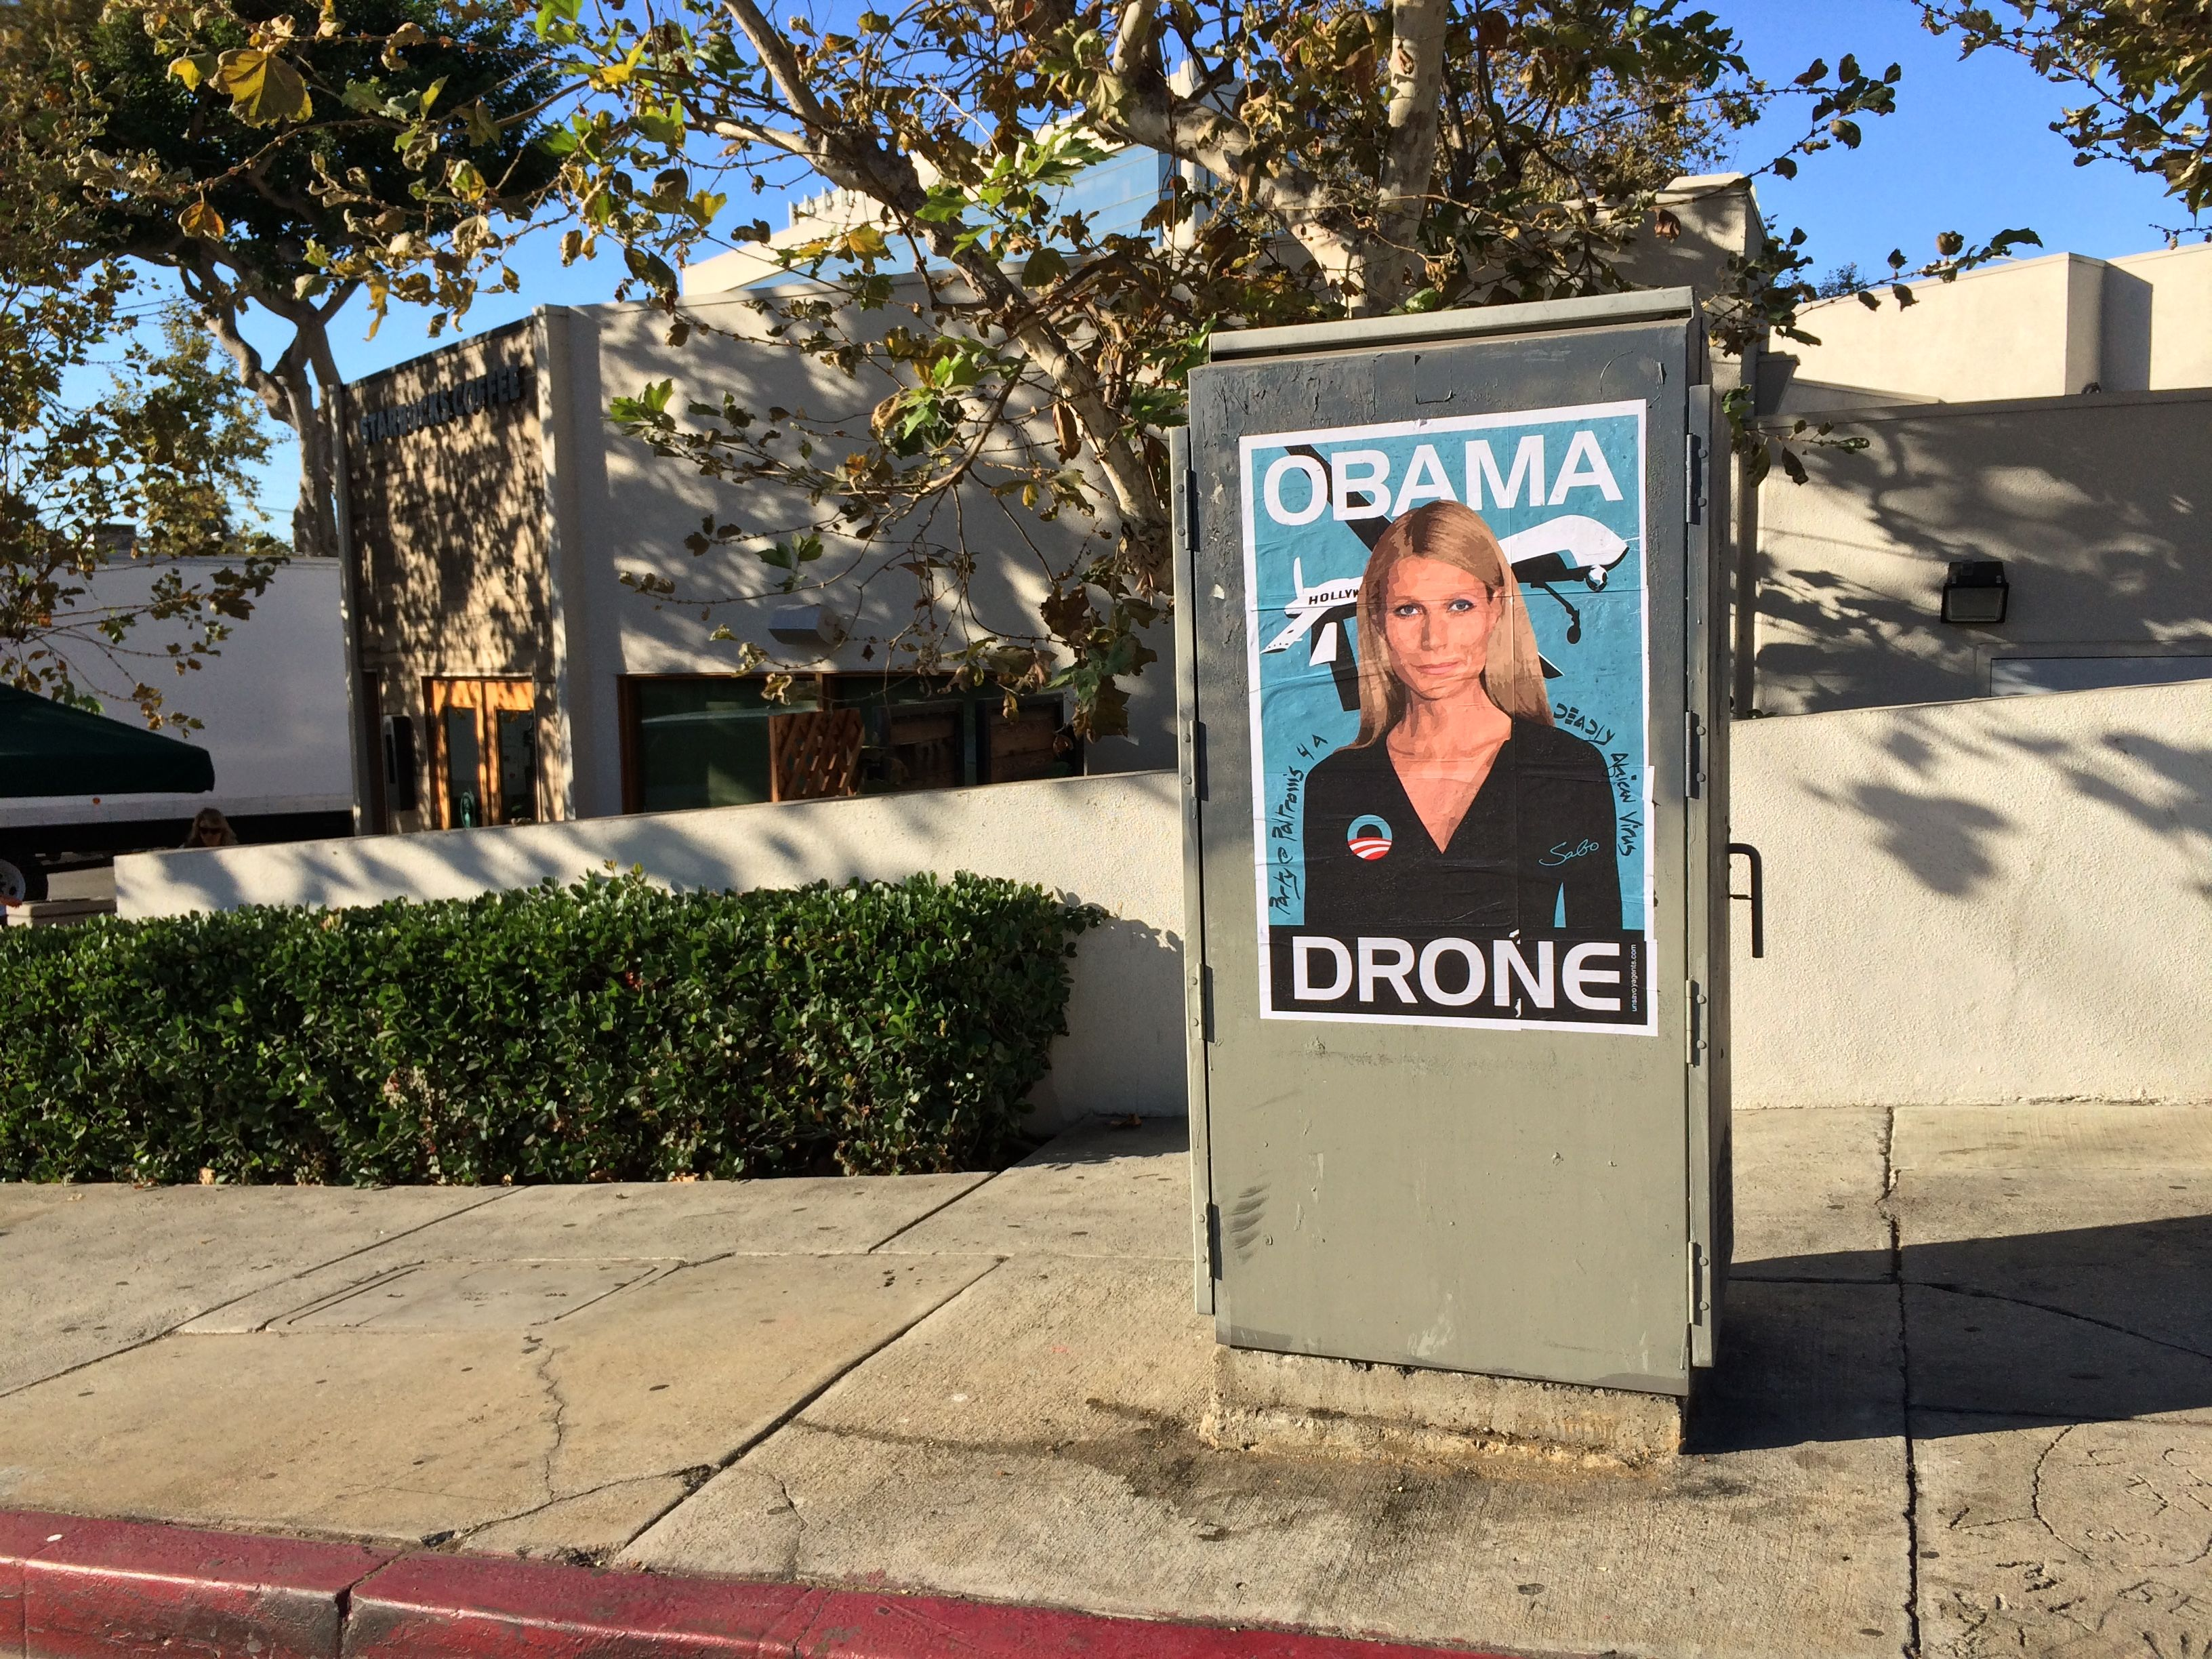 Gwyneth Paltrow Obama Drone posters poster Sabo President Obama DNC fundraiser L.A. Los Angeles Brentwood neighborhood neighbor neighbors hang hanging hung signs plaster plastering plastered traffic signal box boxes lamp posts bus benches anonymous conservative street artist provocative controversial subversive Unsavory Agents UnsavoryAgents outside political Democrats Democrat drones Predator plane planes flying background actor actress home house host hosting gala